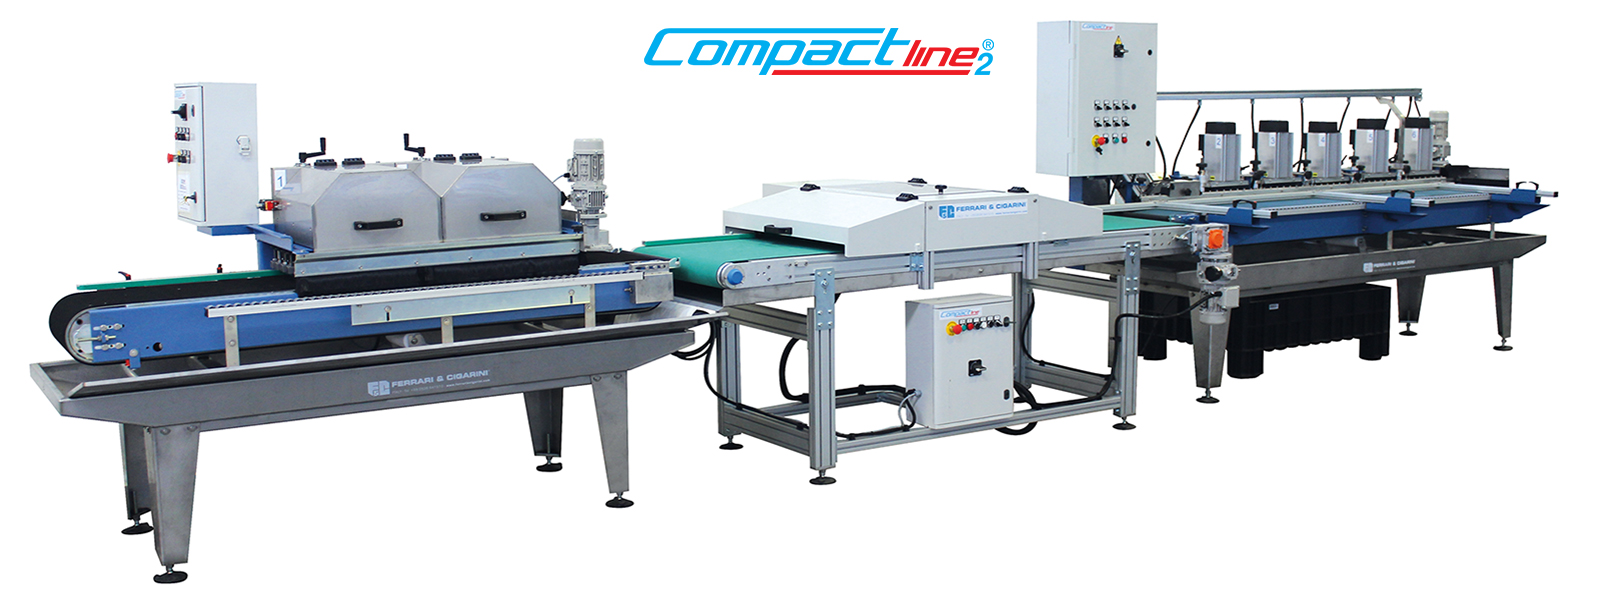 COMPACT LINE 2 - AUTOMATIC CUTTING AND  EDGE-PROFILING LINE FOR CERAMIC